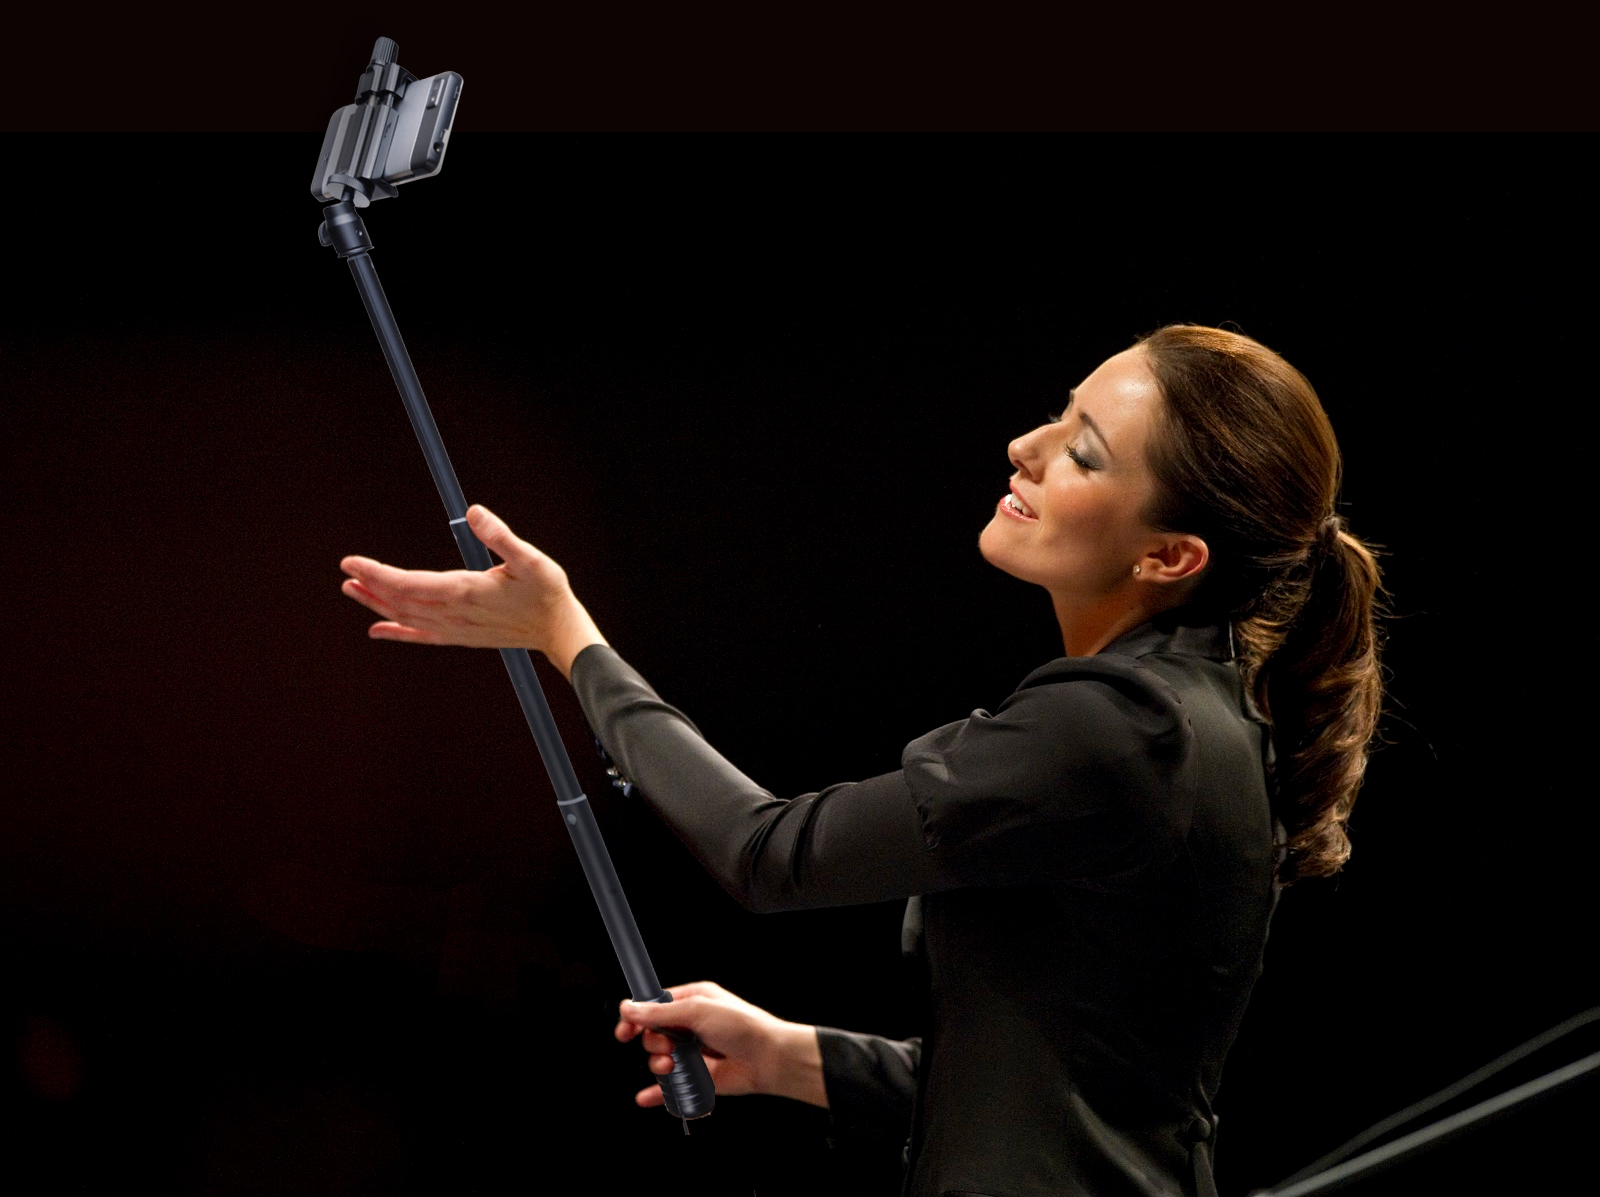 northern women conducting commercial - HD1600×1197